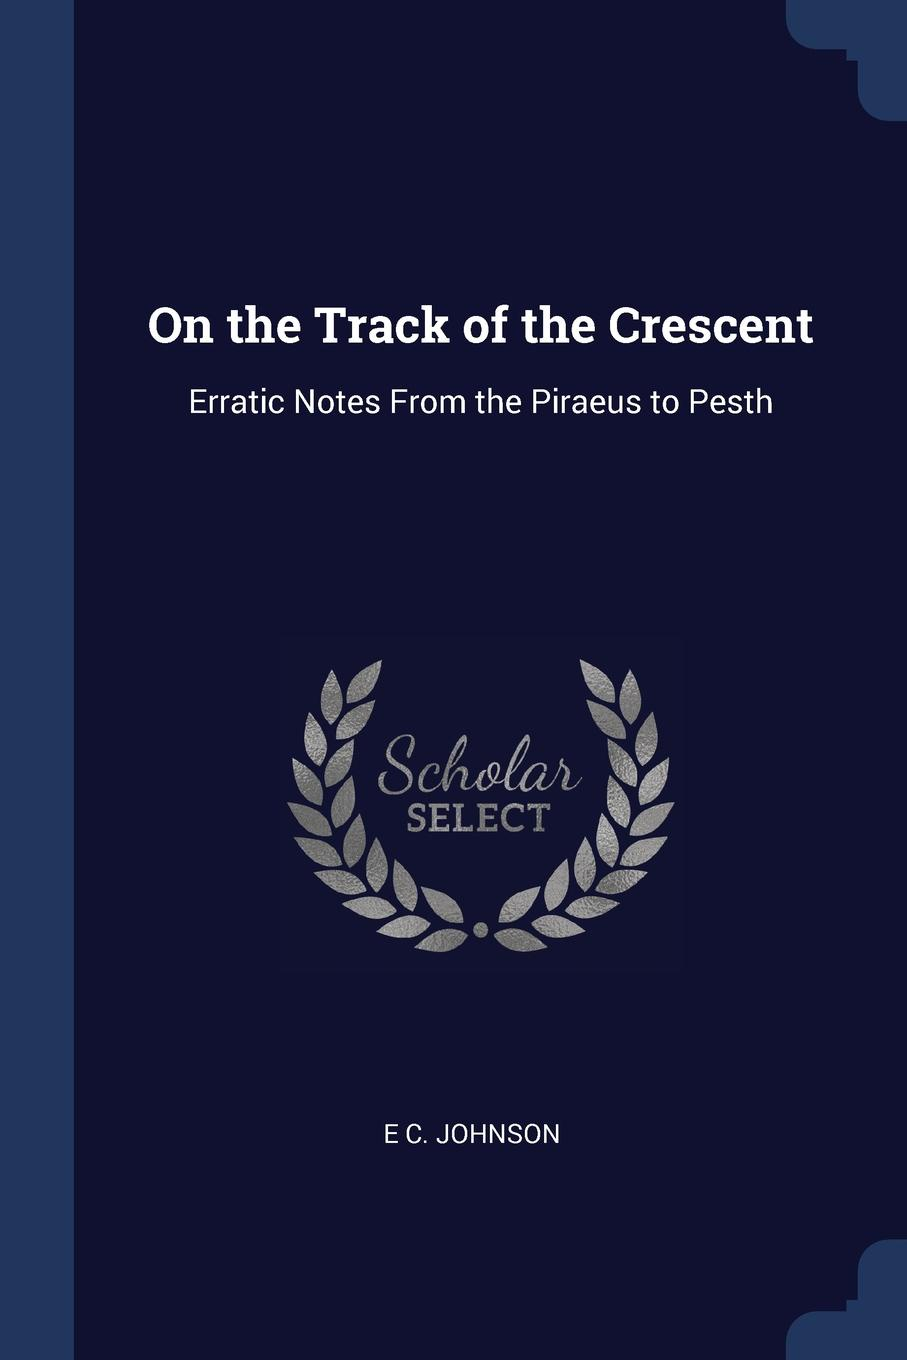 On the Track of the Crescent. Erratic Notes From the Piraeus to Pesth. E C. Johnson